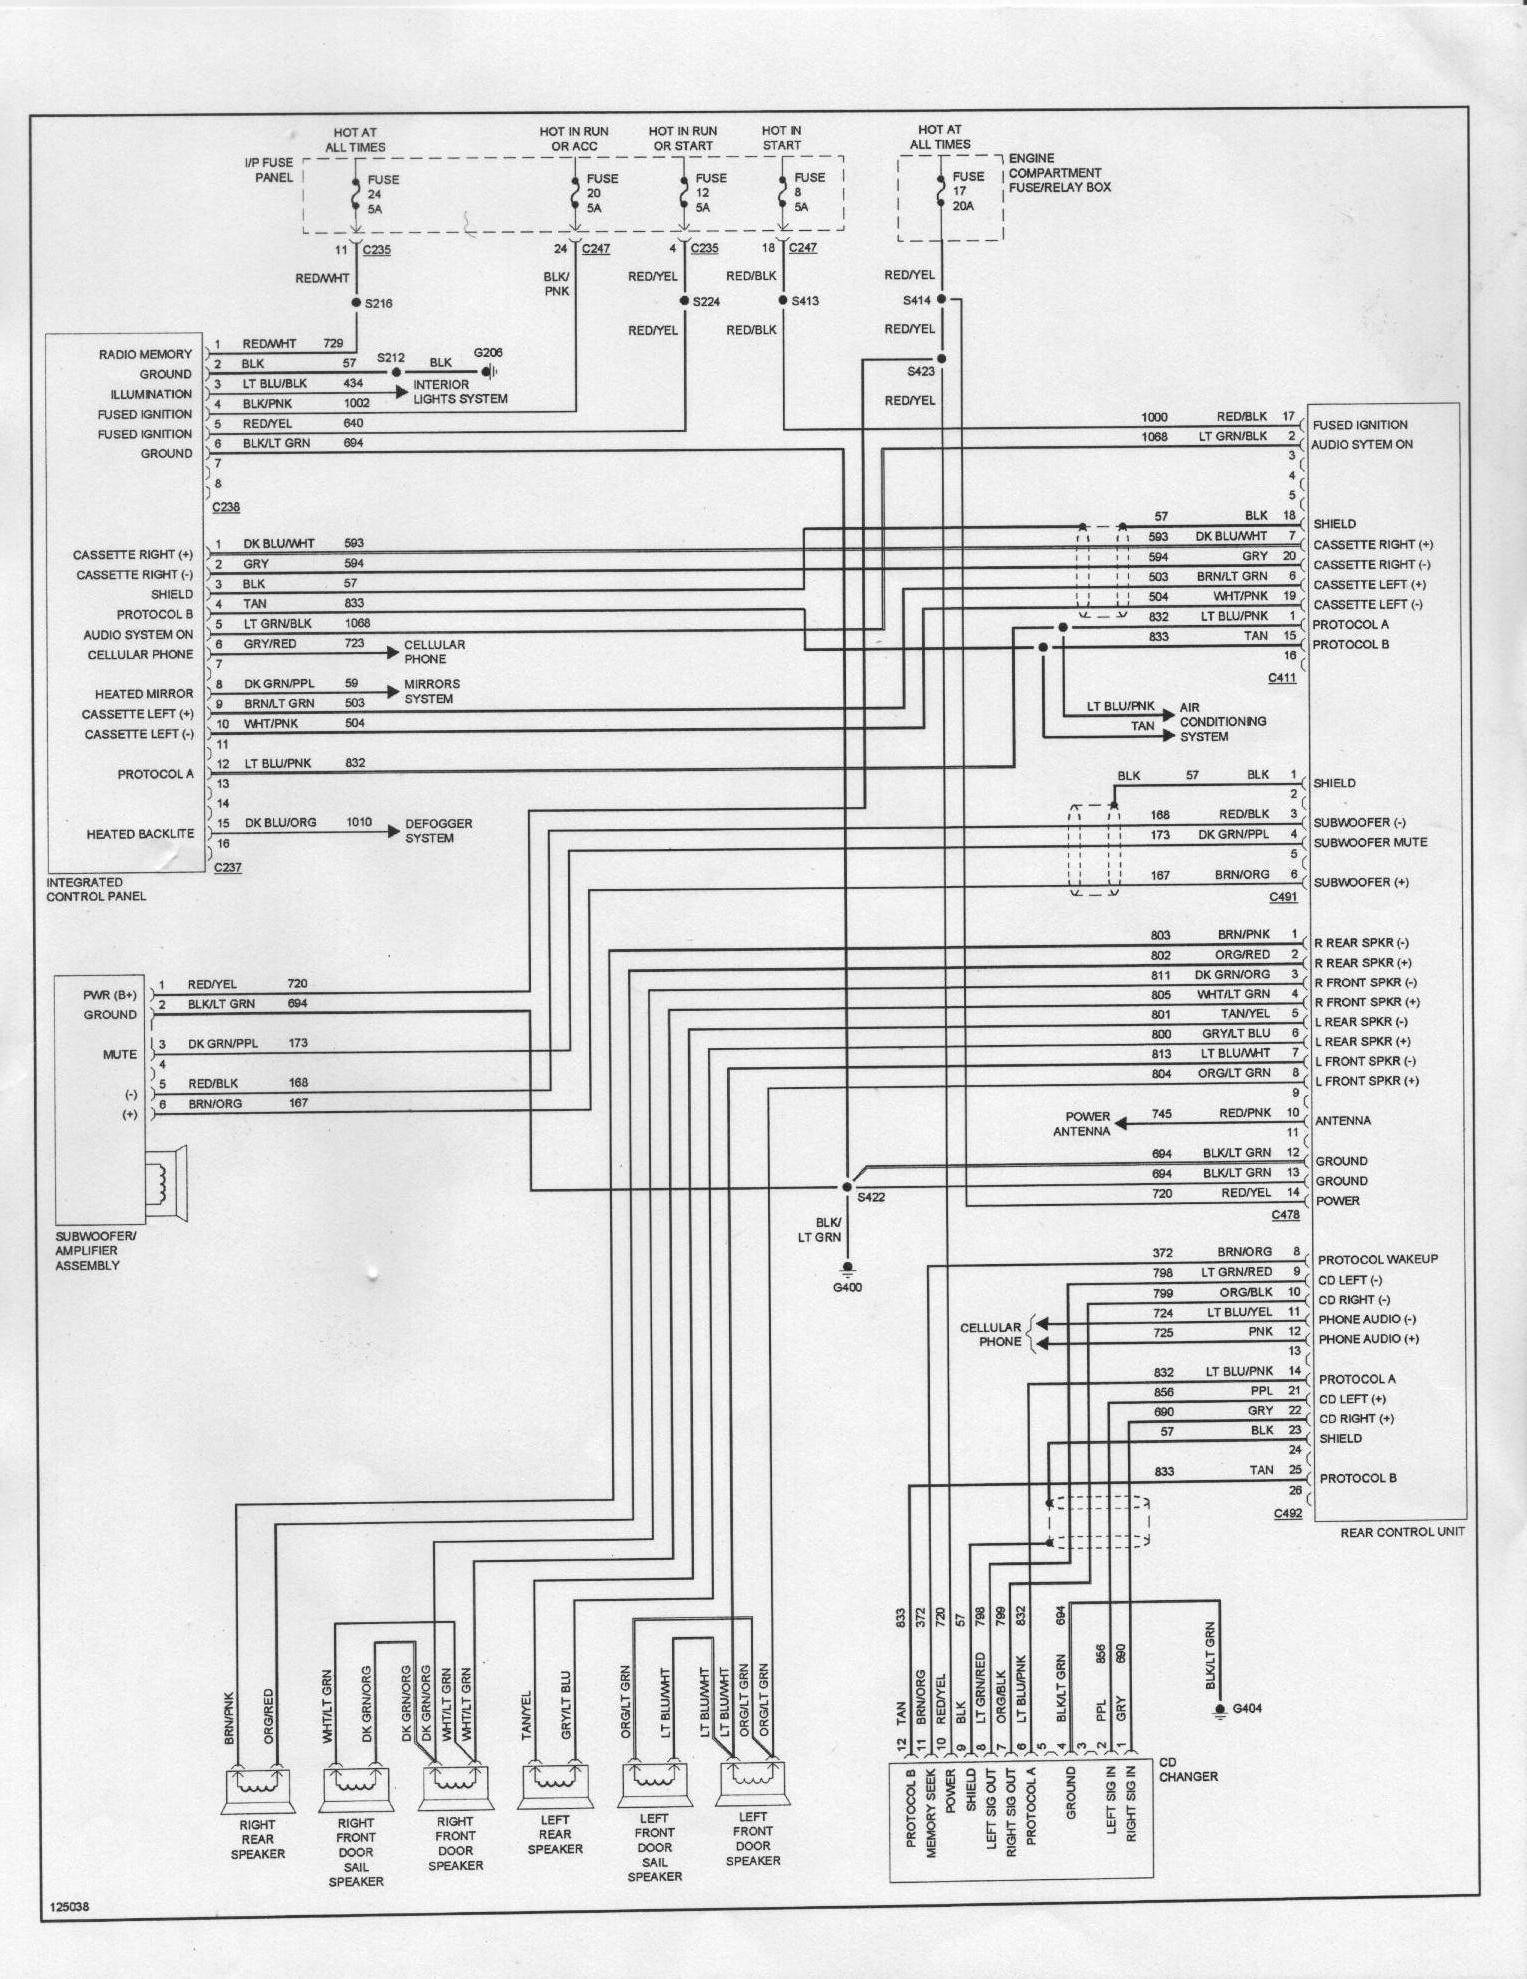 46283d1177474774 amp wiring diagram96 amp wiring taurus car club of america ford taurus forum 02 Ford Taurus Wiring Diagram at soozxer.org